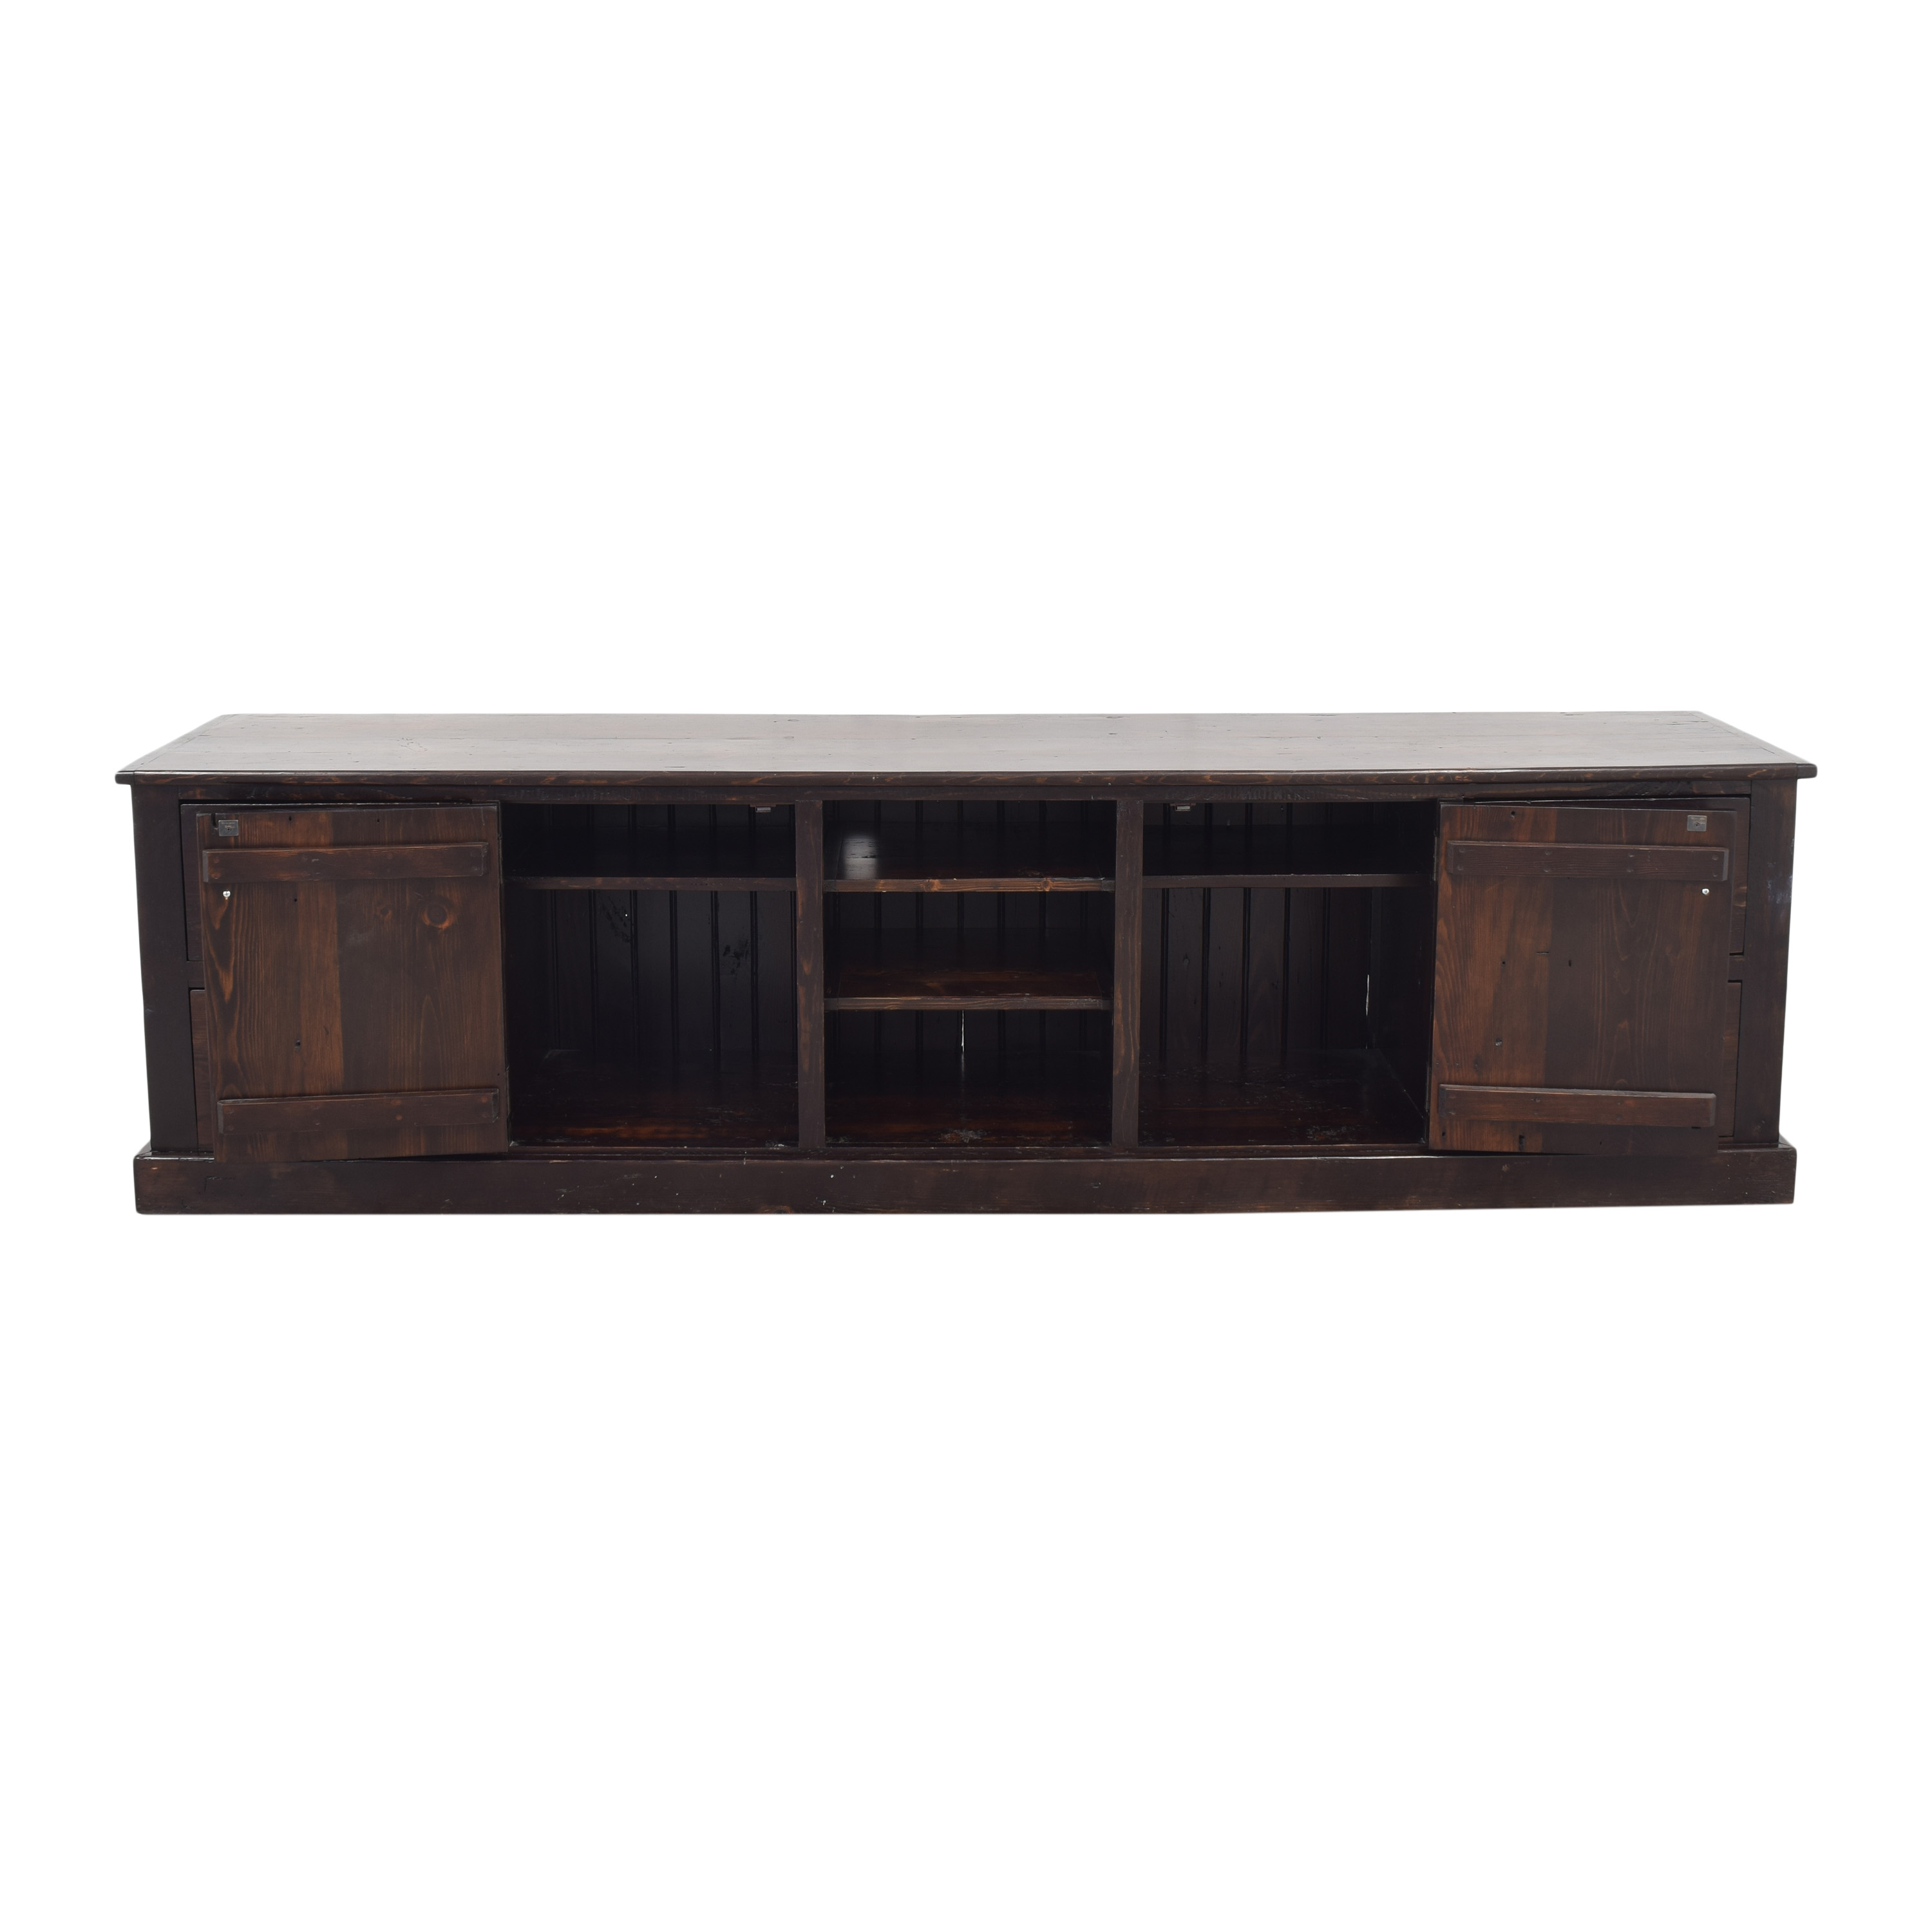 buy Furniture From the Barn Media Console Furniture From The Barn Media Units